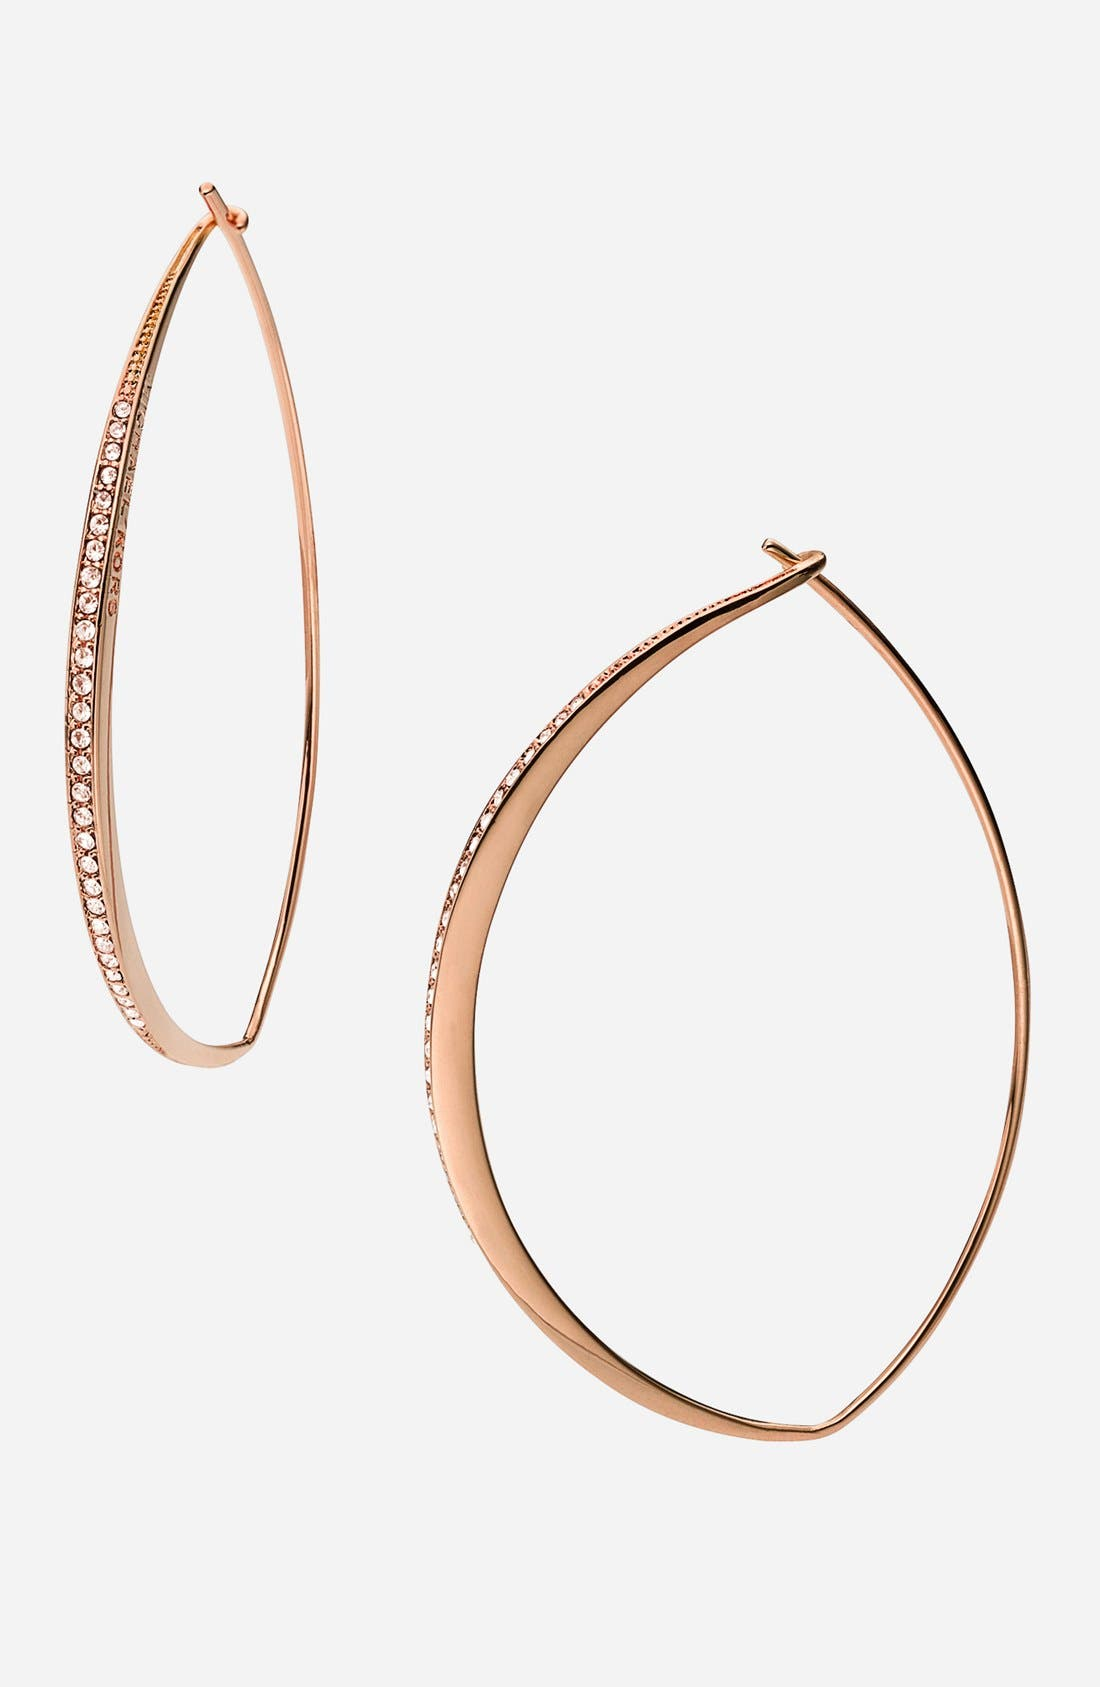 Main Image - Michael Kors 'Brilliance - Whisper' Hoop Earrings